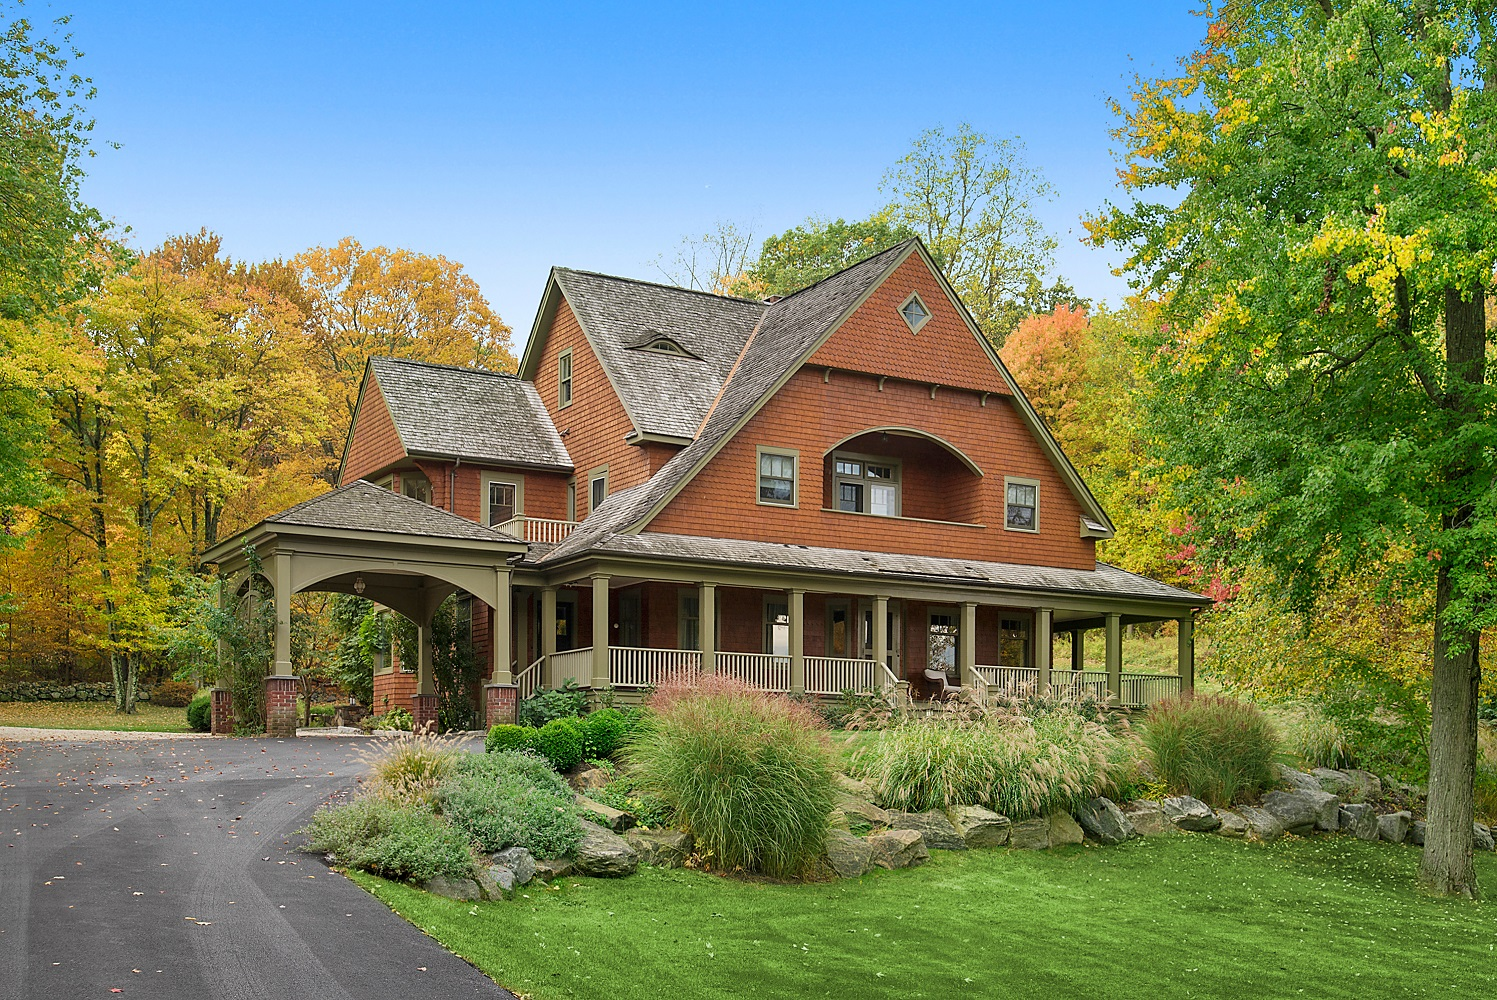 23 UPLAND LANE  CROTON ON HUDSON  LIST PRICE $1,548,000  SOLD PRICE $1,520,000  SOLD ON 06/26/19